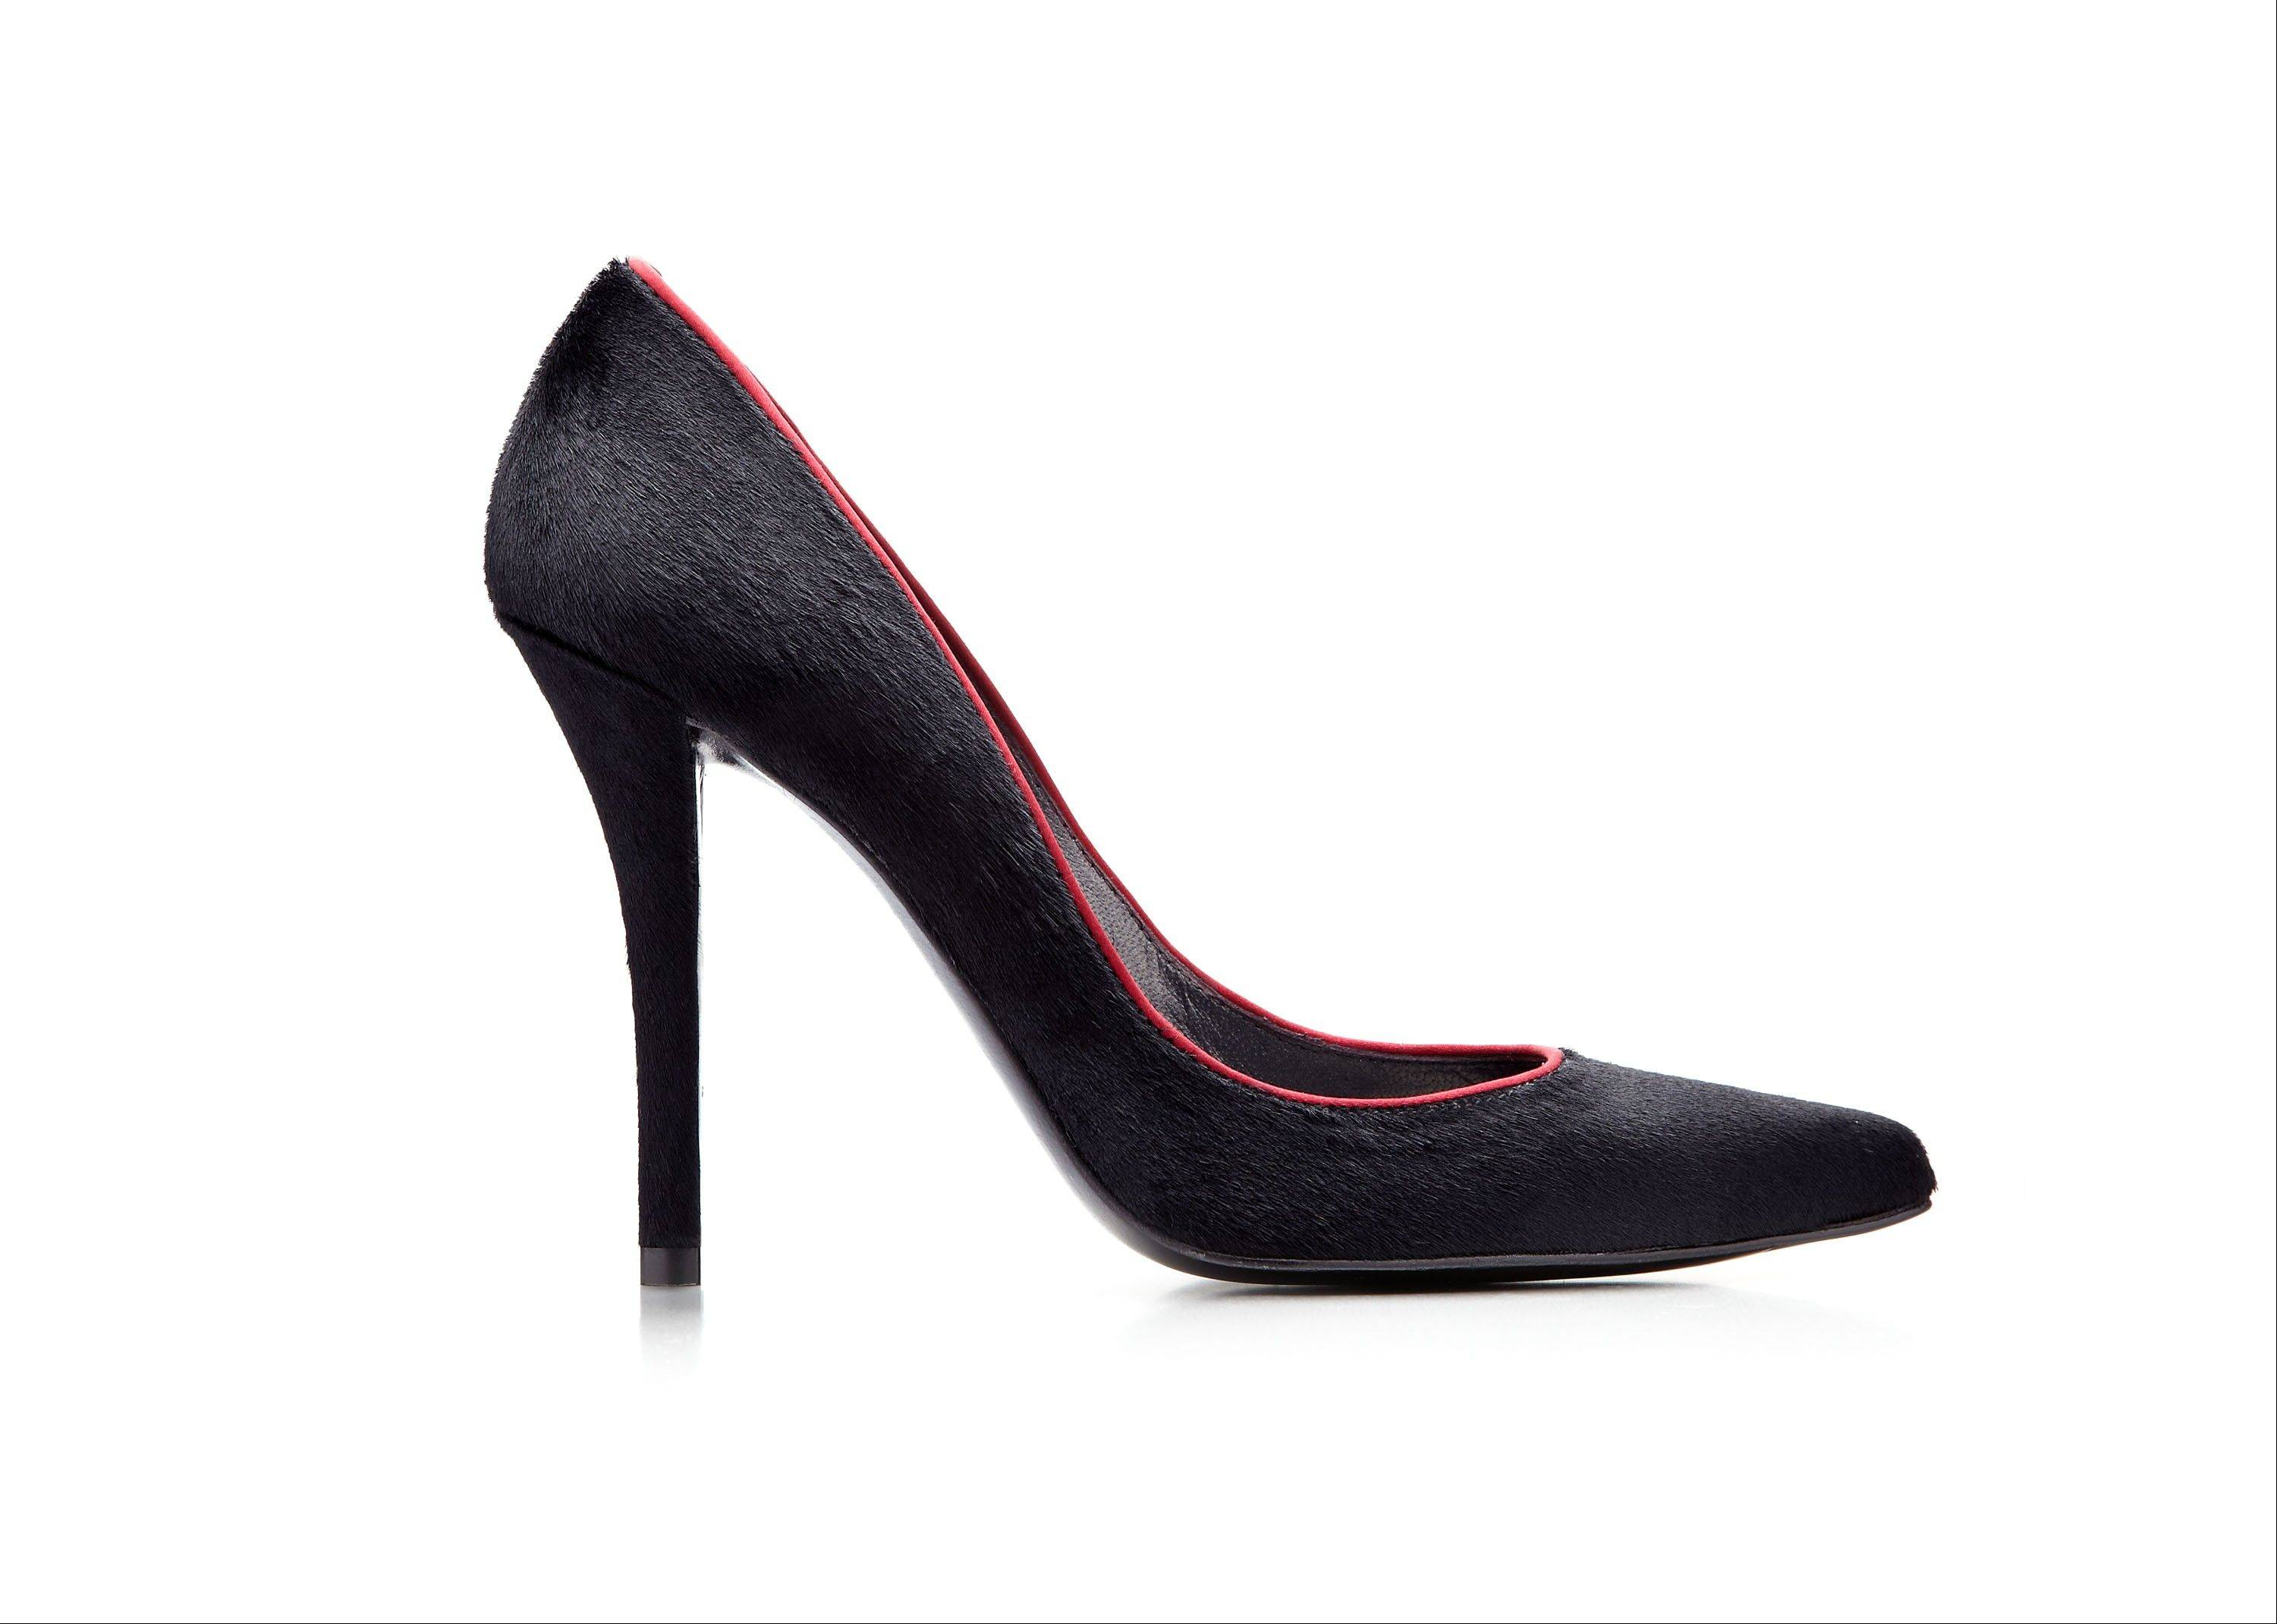 This black pony-hair stiletto pump with burgundy satin piping was codesigned by actress AnnaSophia Robb for a special Stuart Weitzman collection to help raise money for ovarian cancer research.